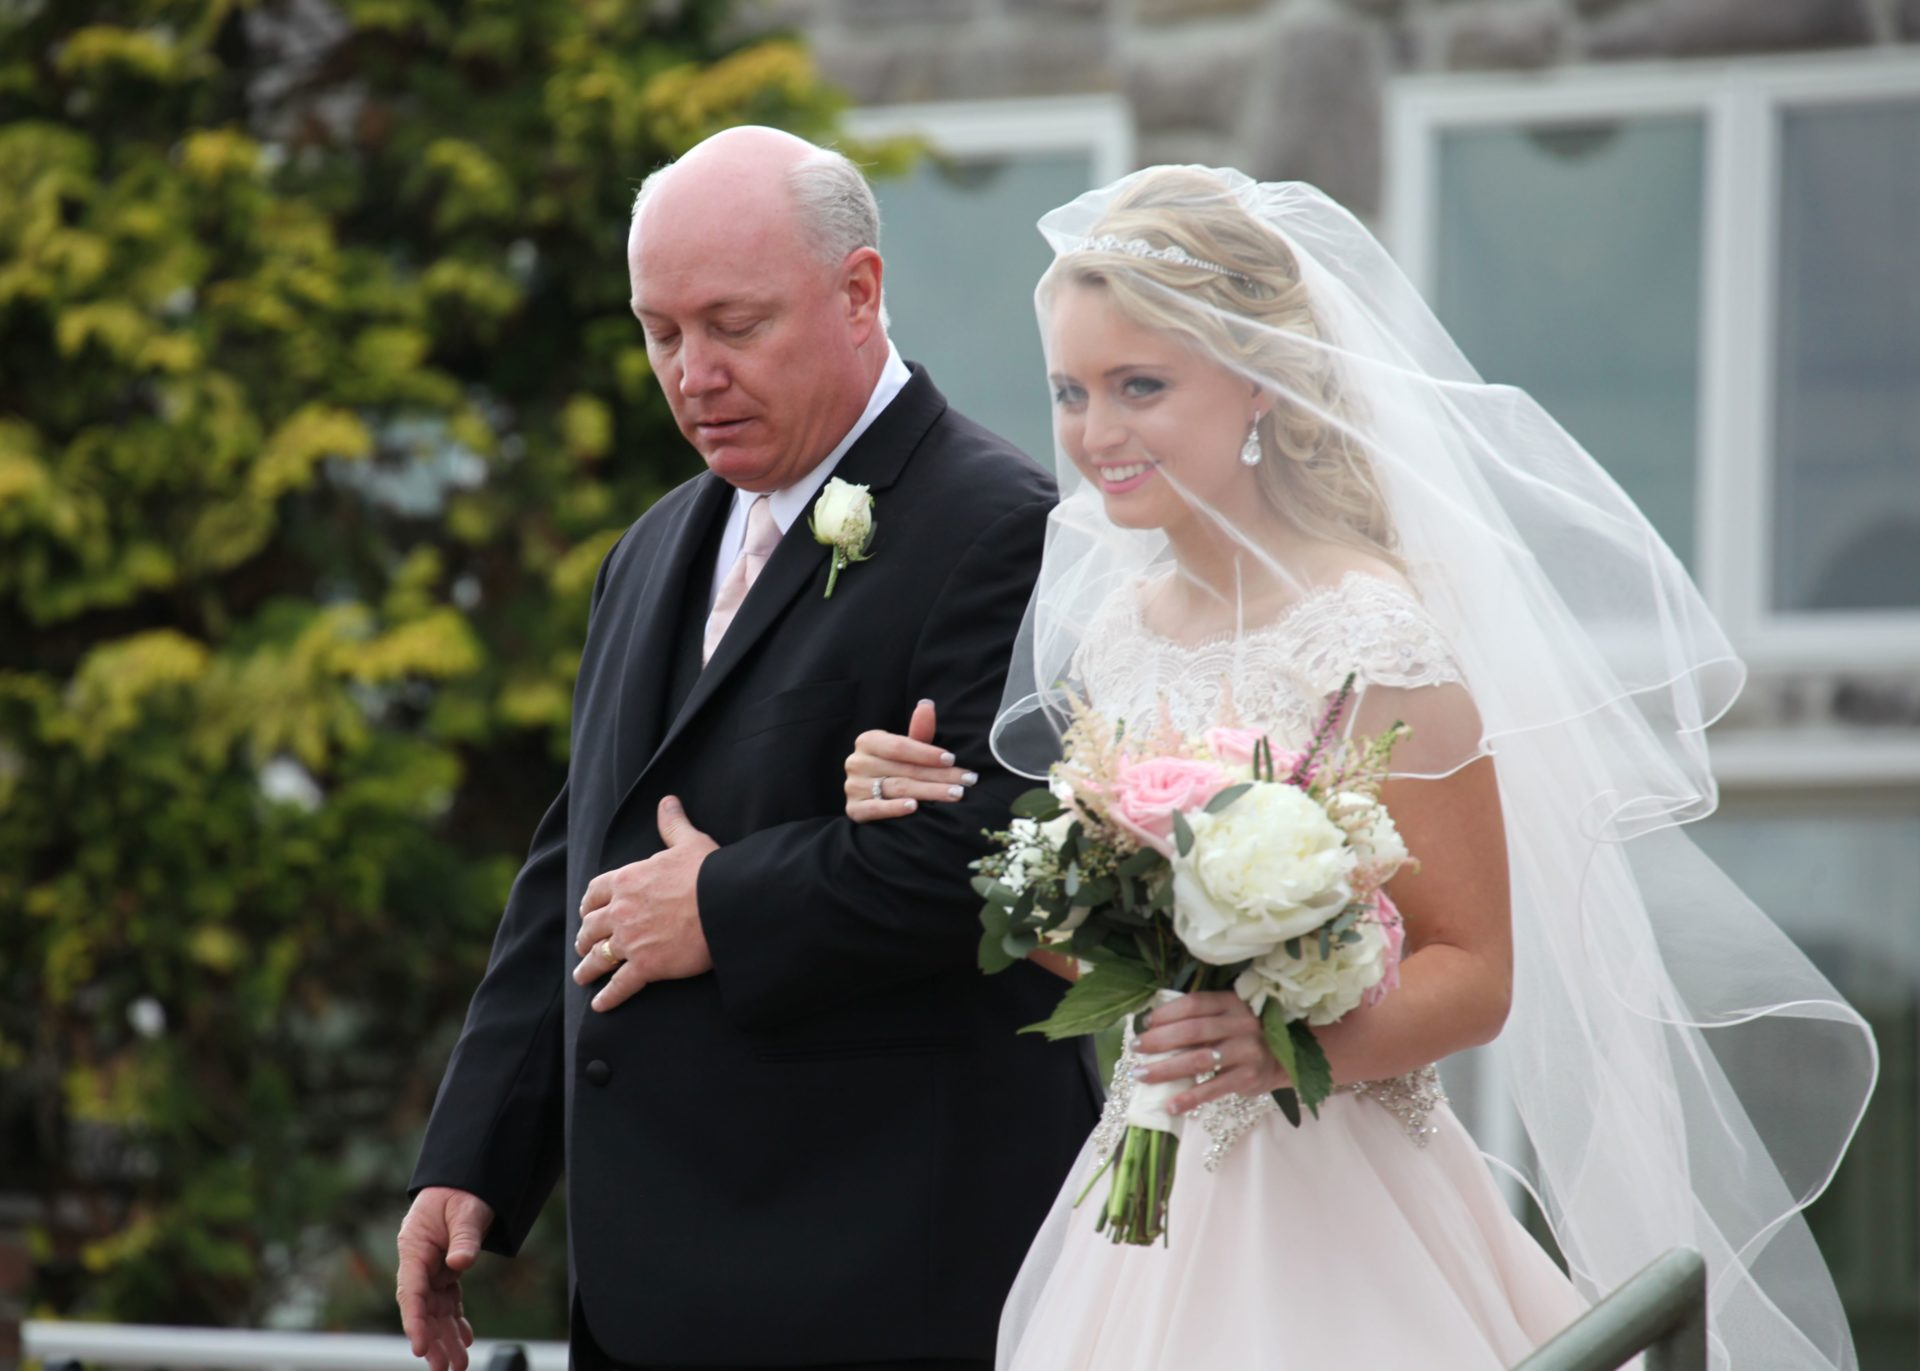 Father of the bride walks bride down aisle at outdoor wedding ceremony in Frederick at Morningside Inn